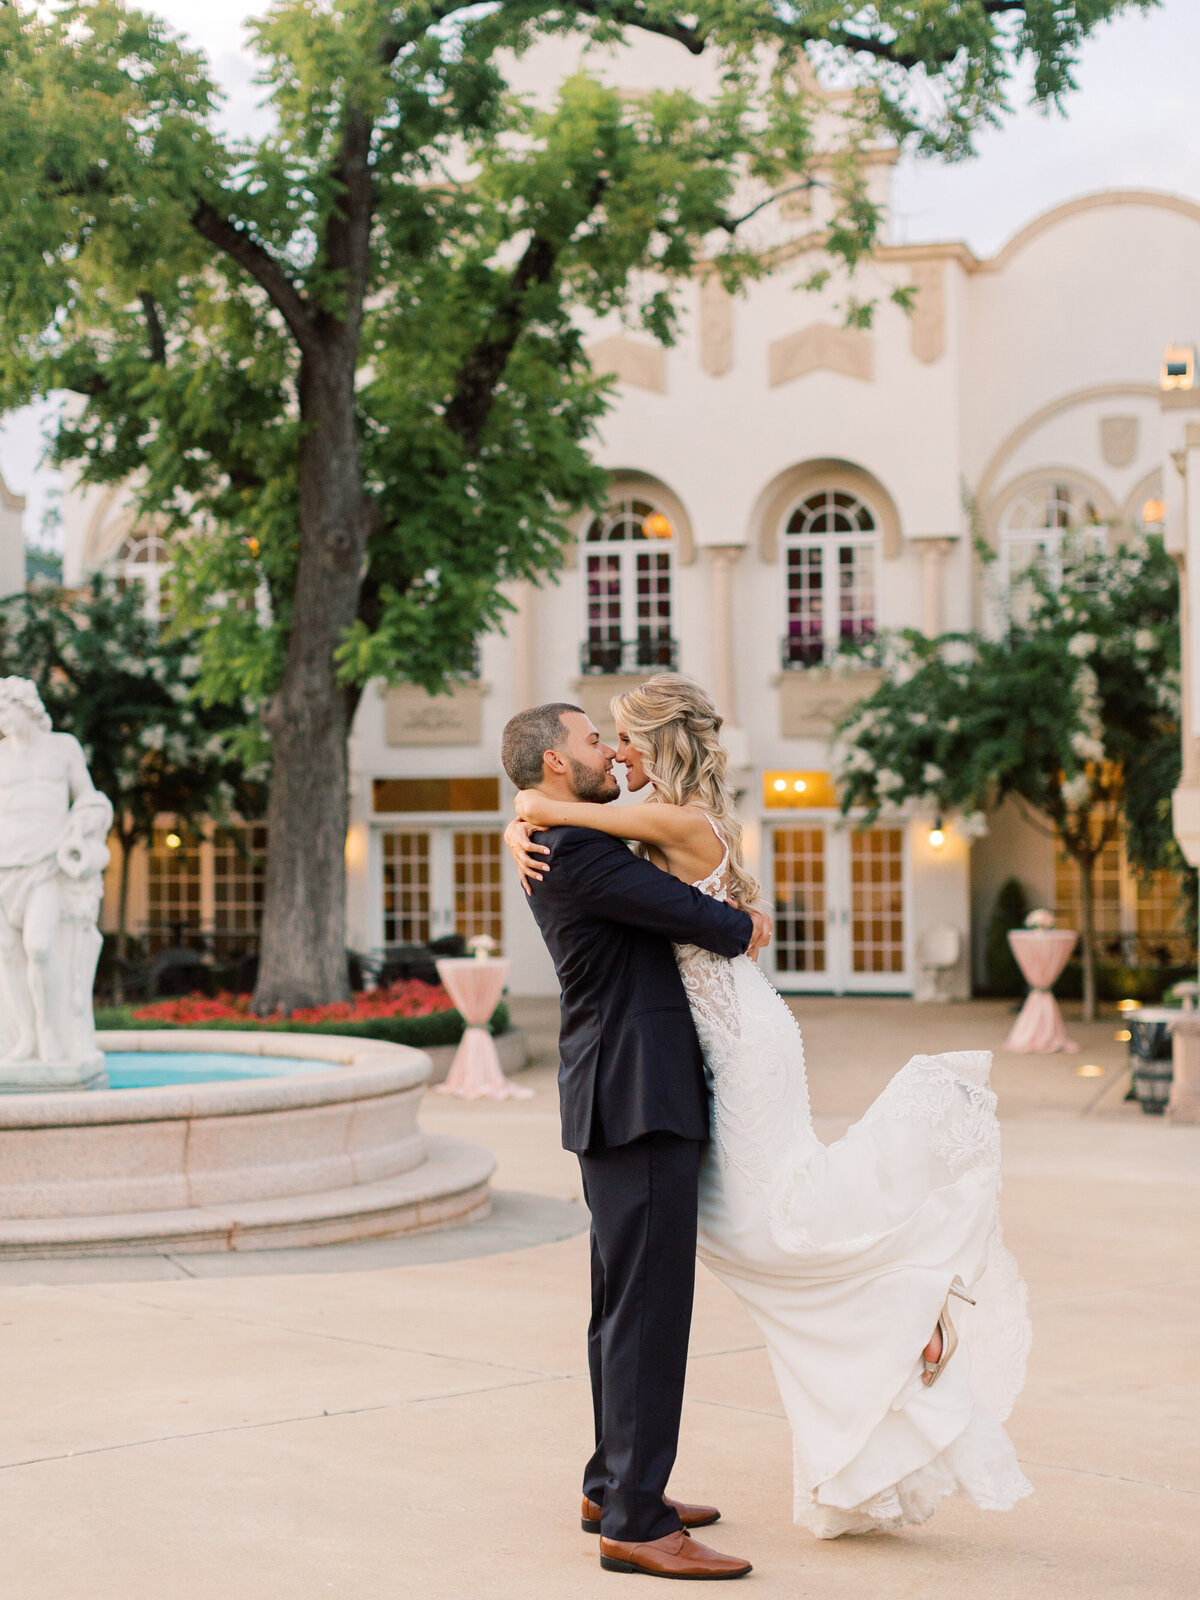 MLP-Aubrey-Tyler-Morais-Vineyards-Winery-Wedding-791